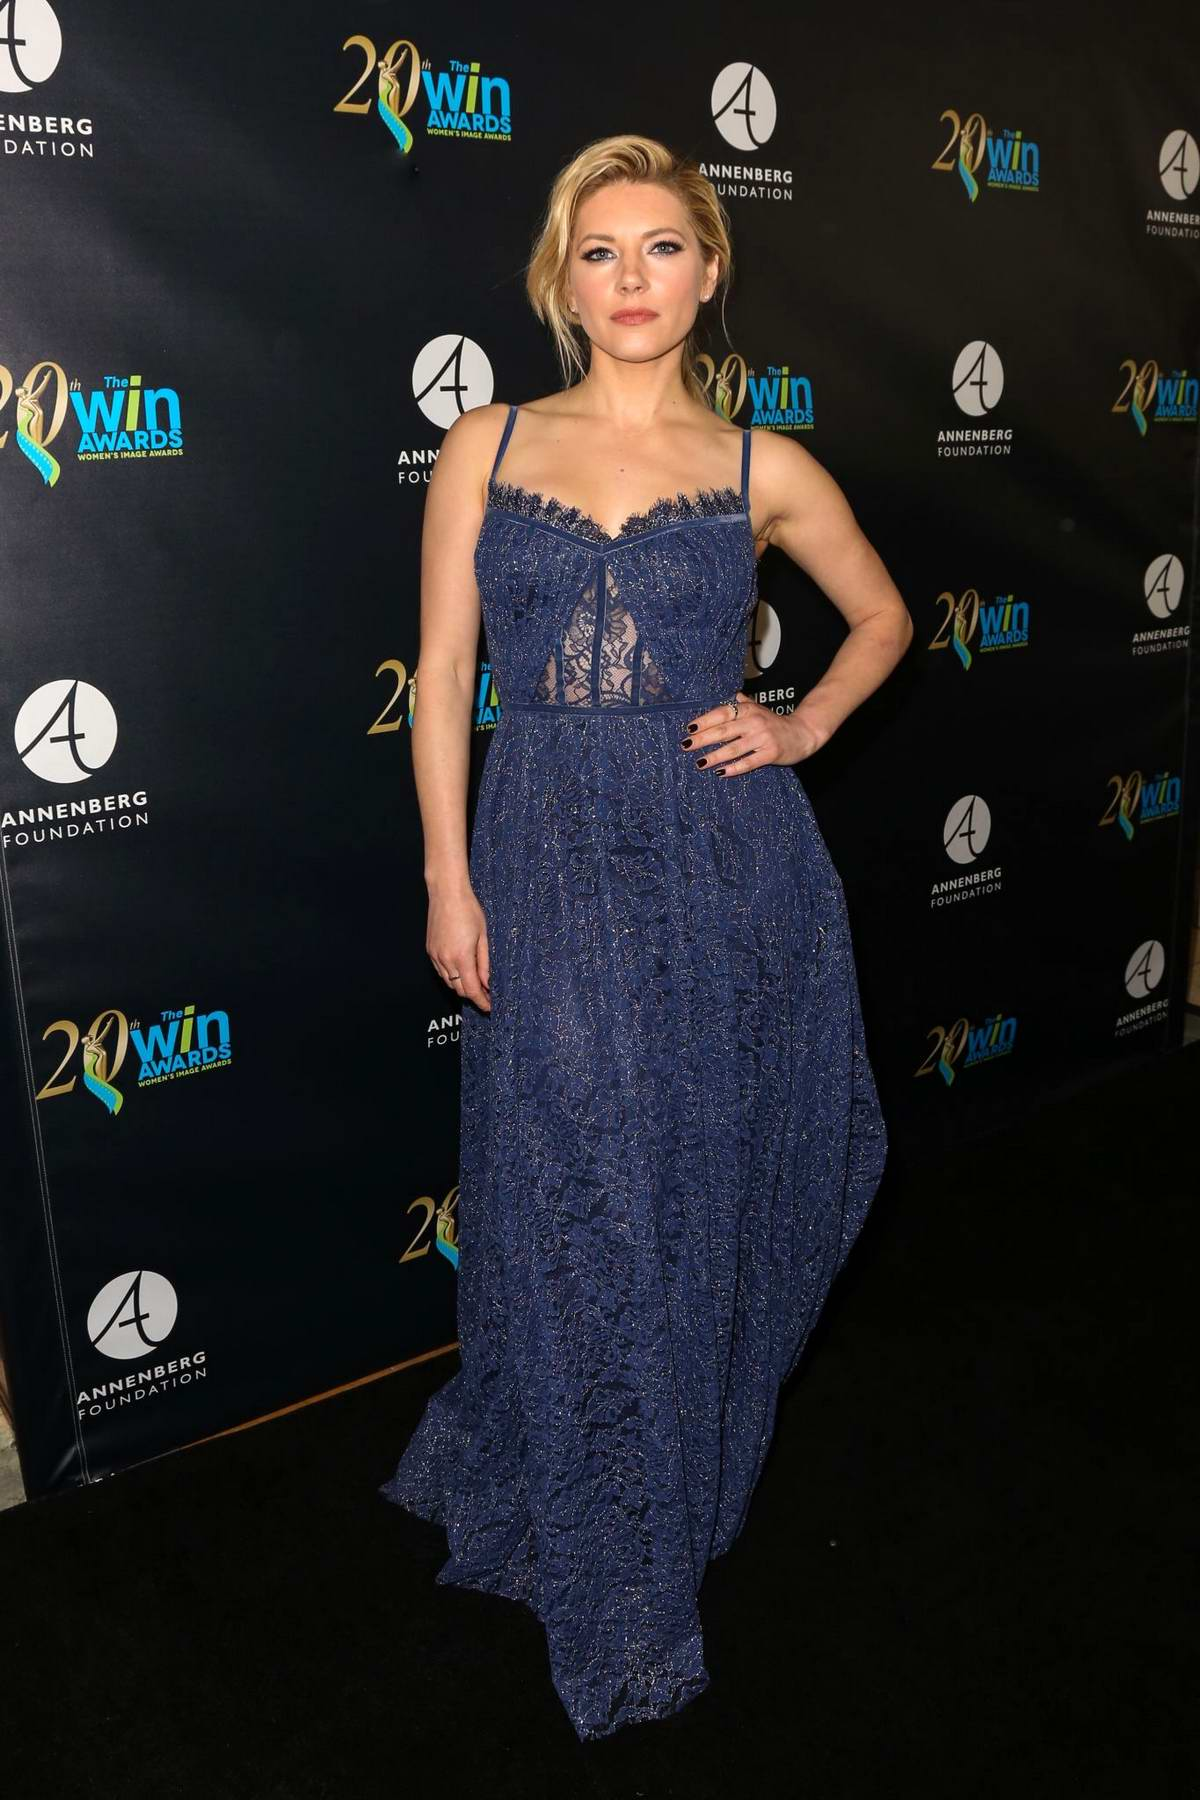 Katheryn Winnick attends the 20th Annual Women's Image Awards at Montage Beverly Hills in Beverly Hills, Los Angeles